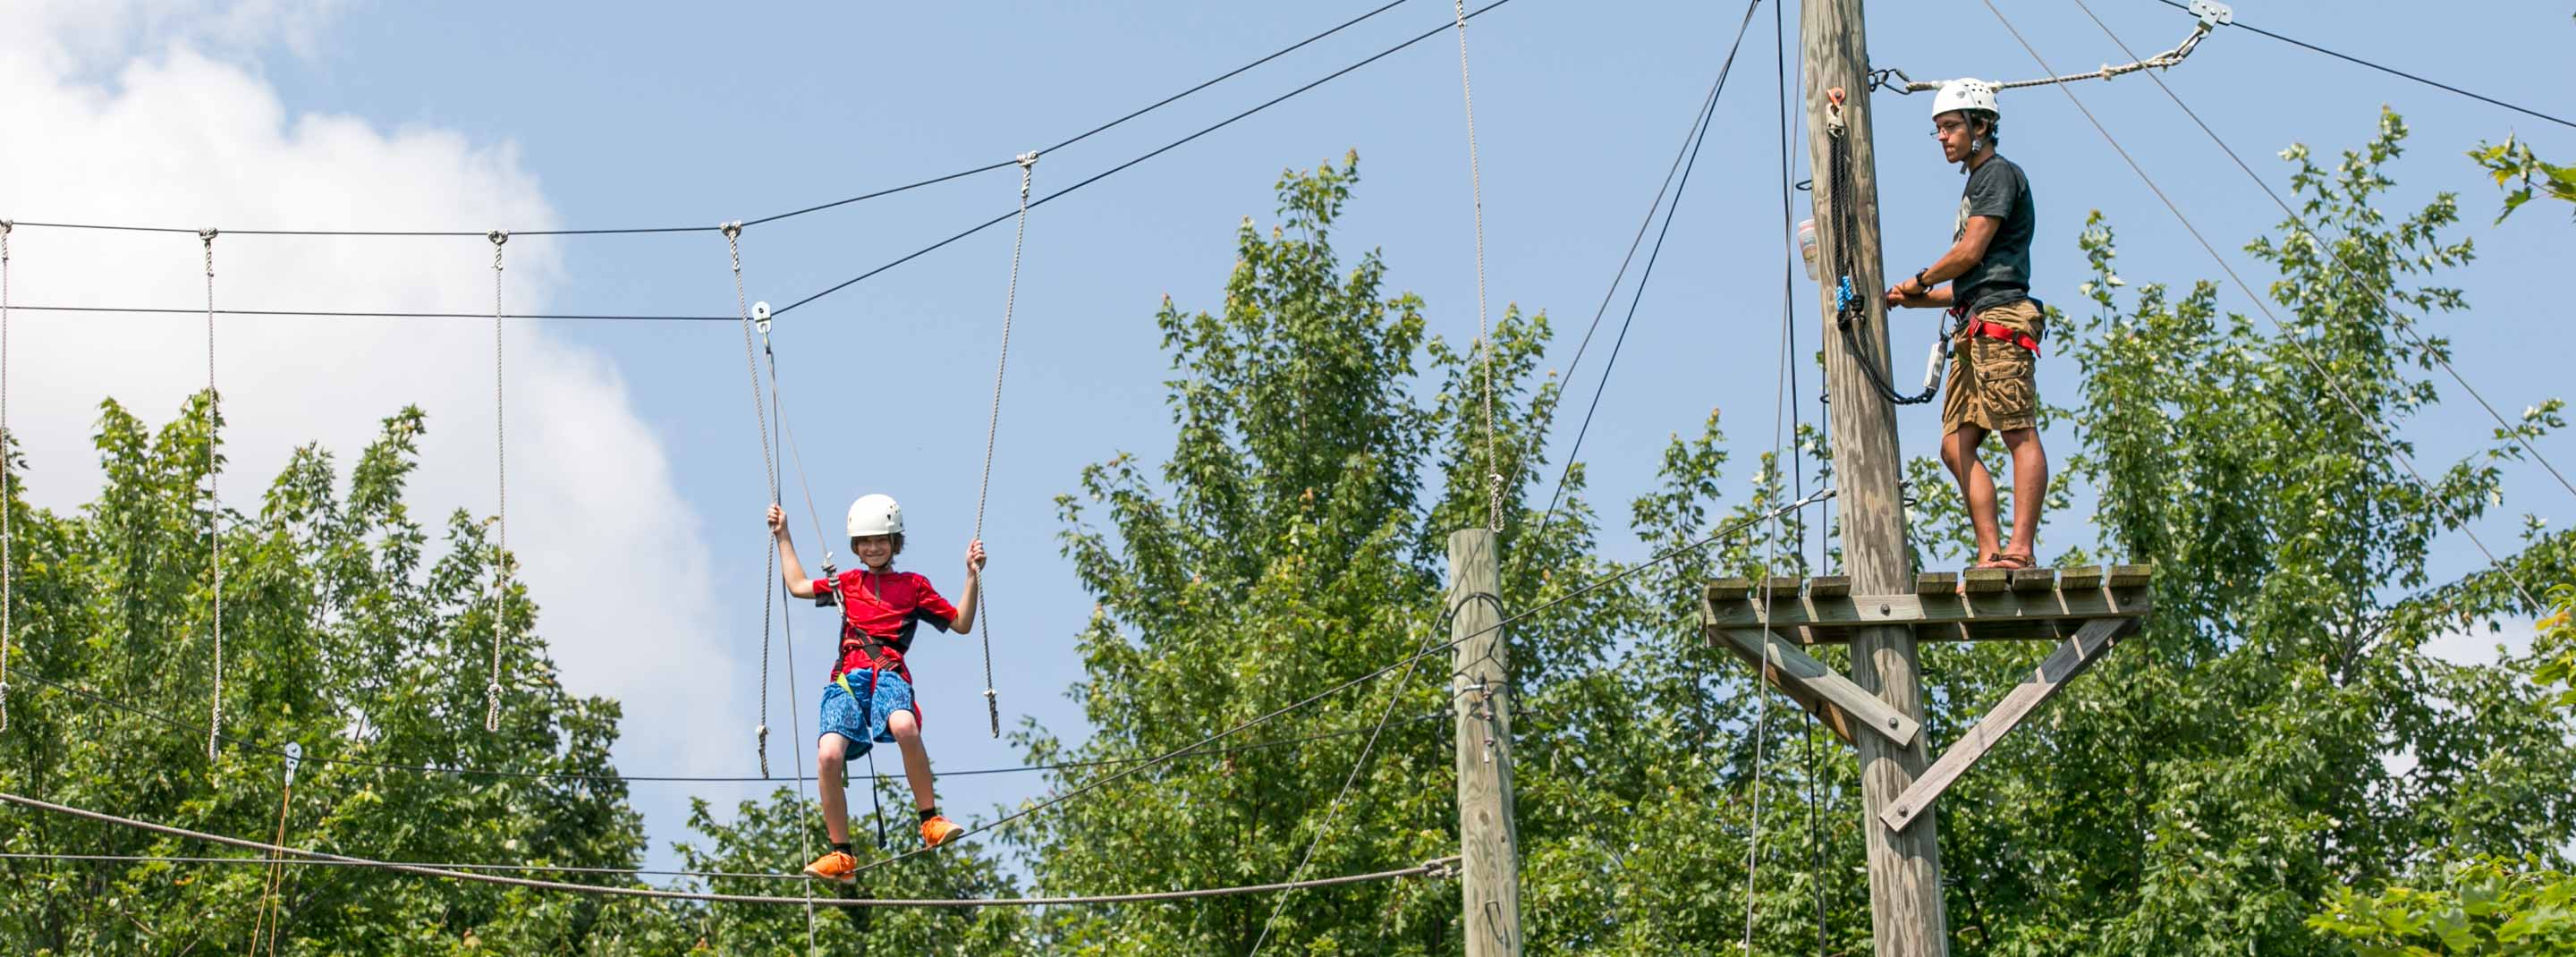 Staff and camper on high ropes course